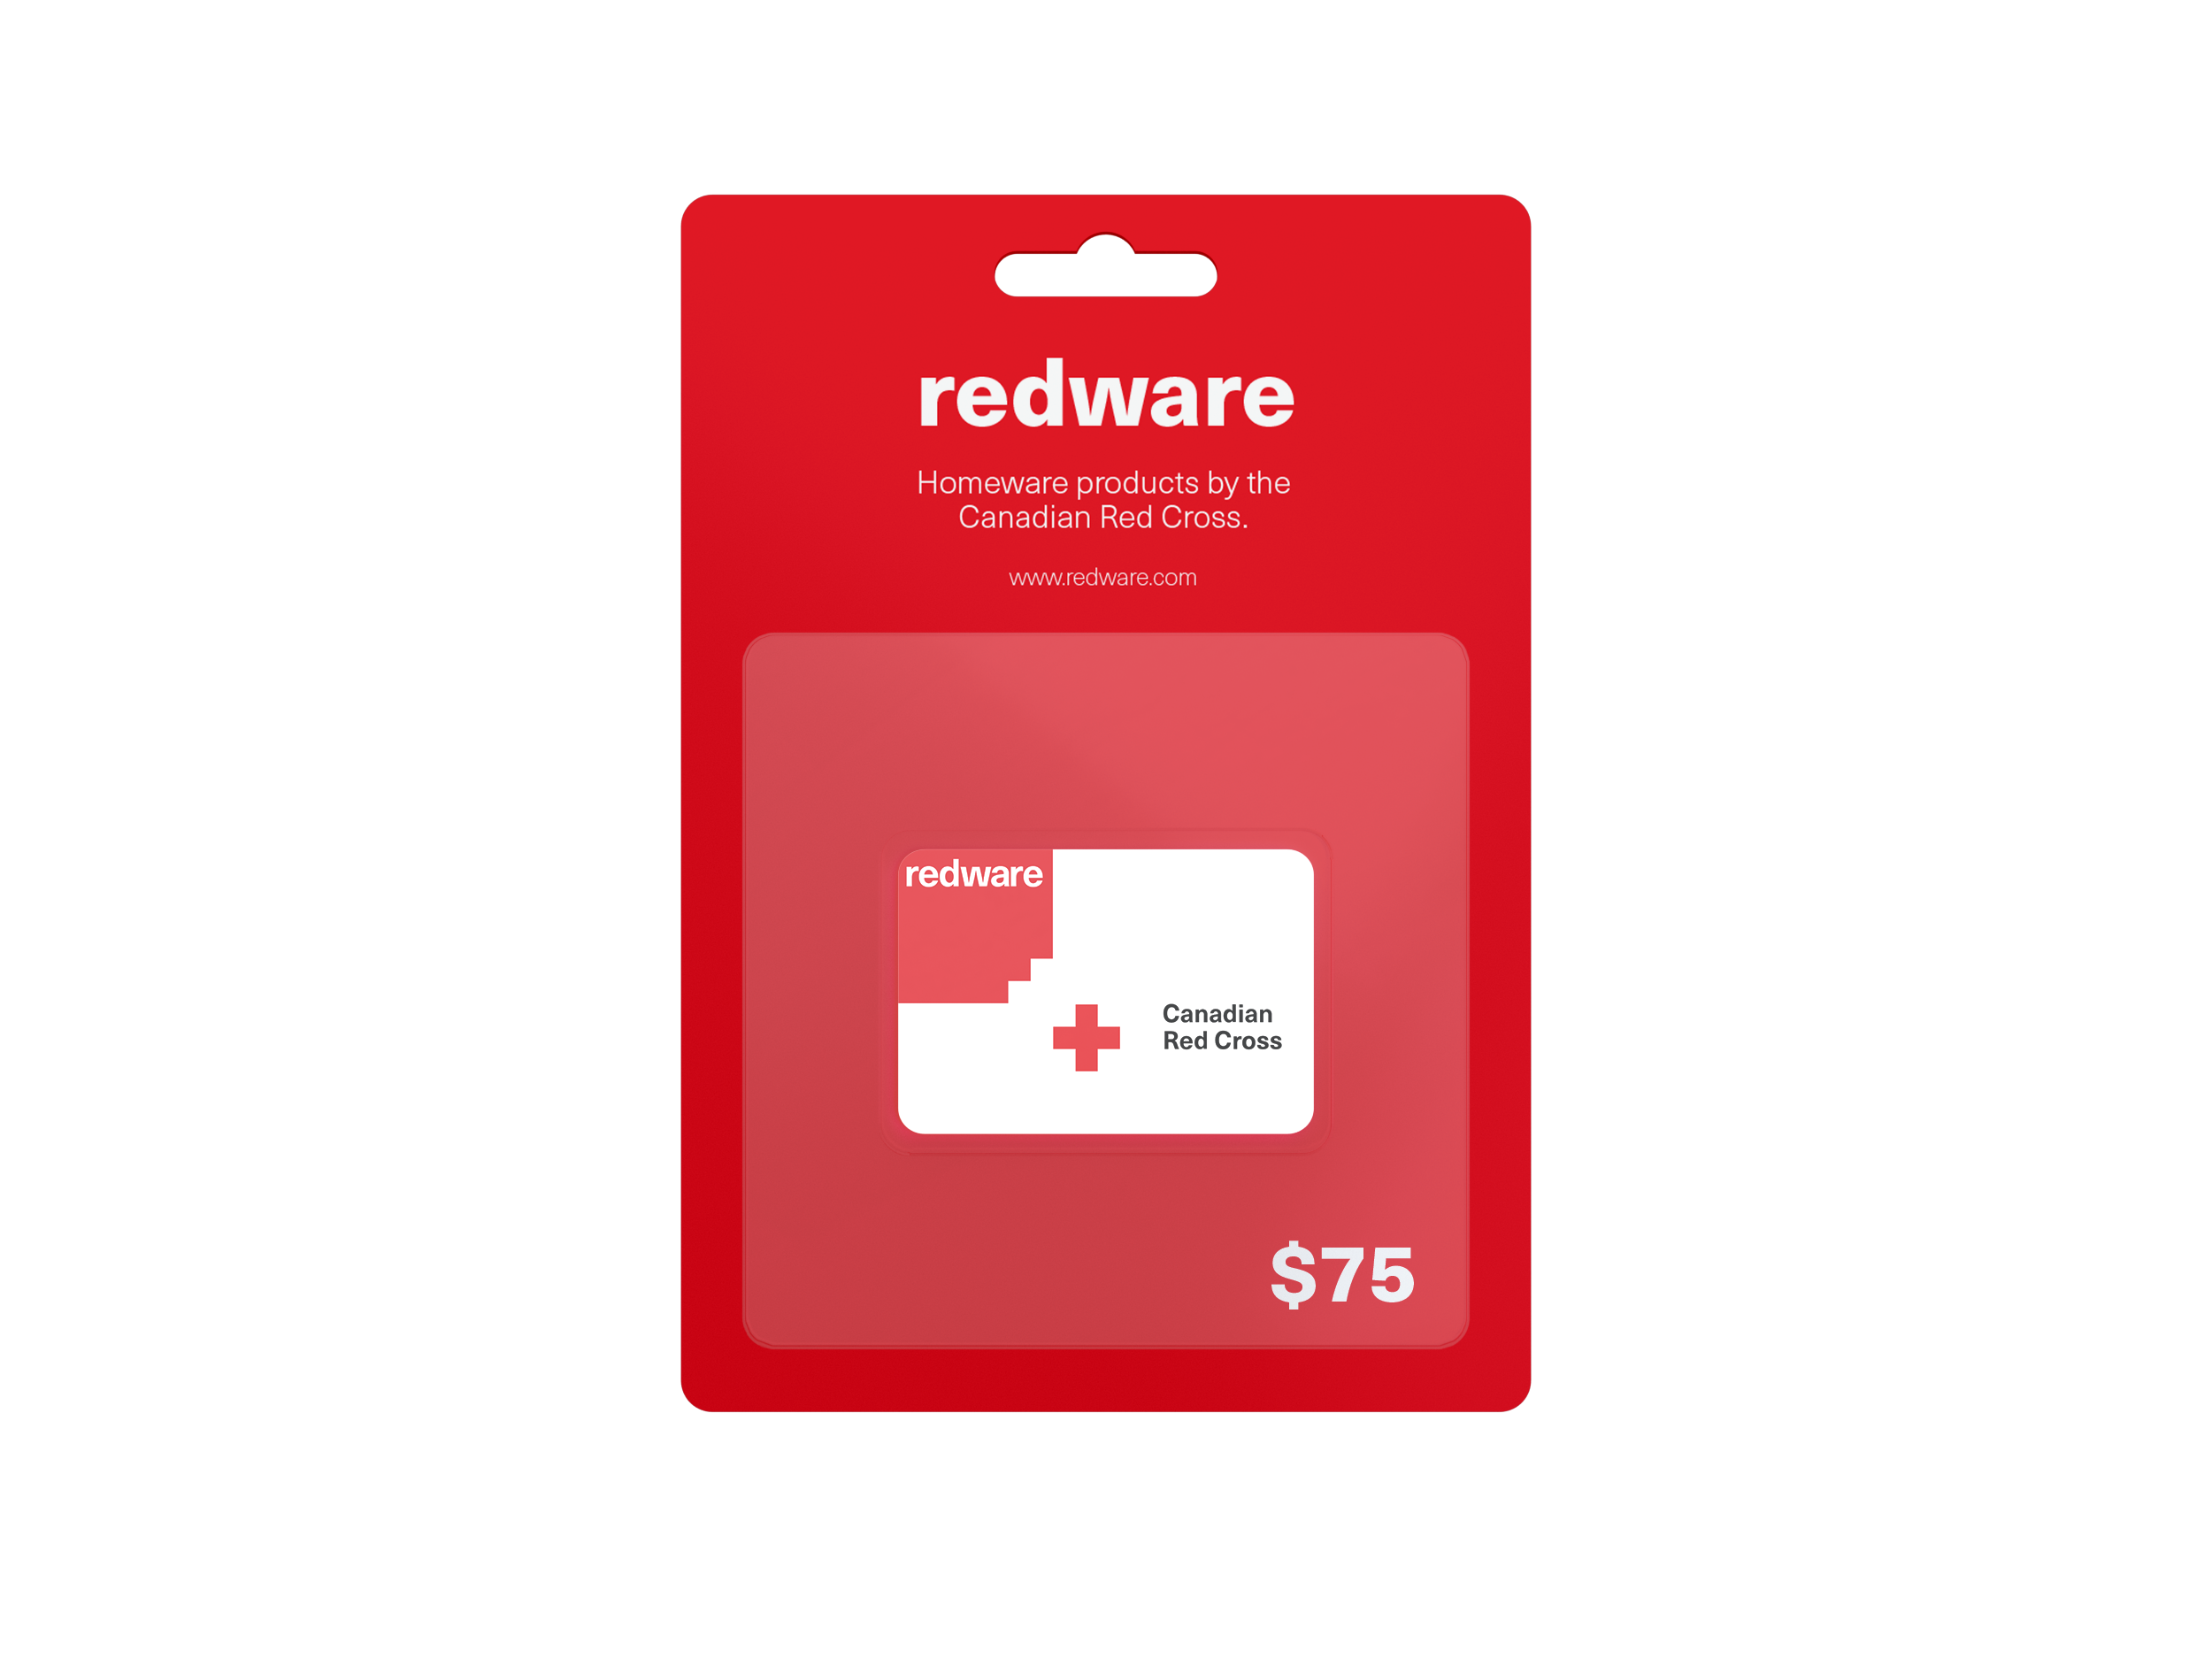 Redware gift cards available at shopping destinations such as Shoppers and Loblaws which work great as Christmas, birthday or housewarming gifts.